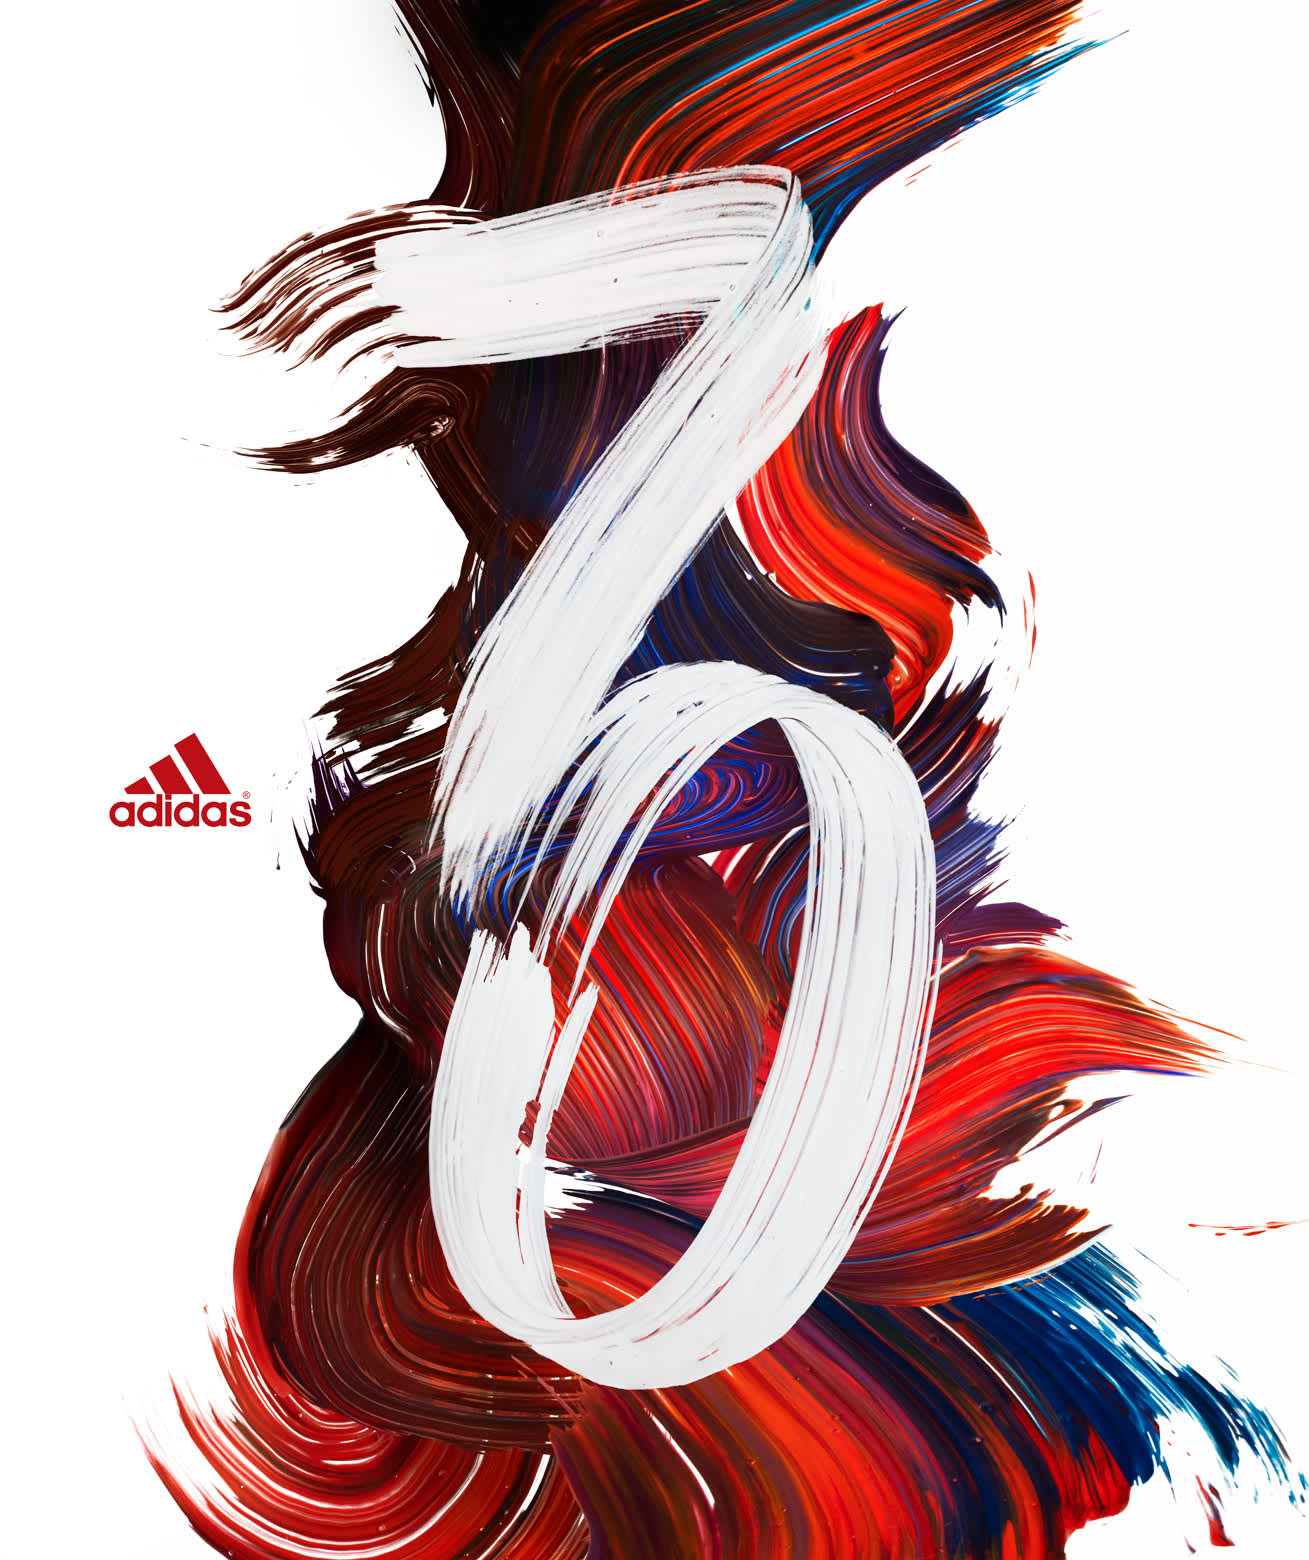 70 Years of Adidas